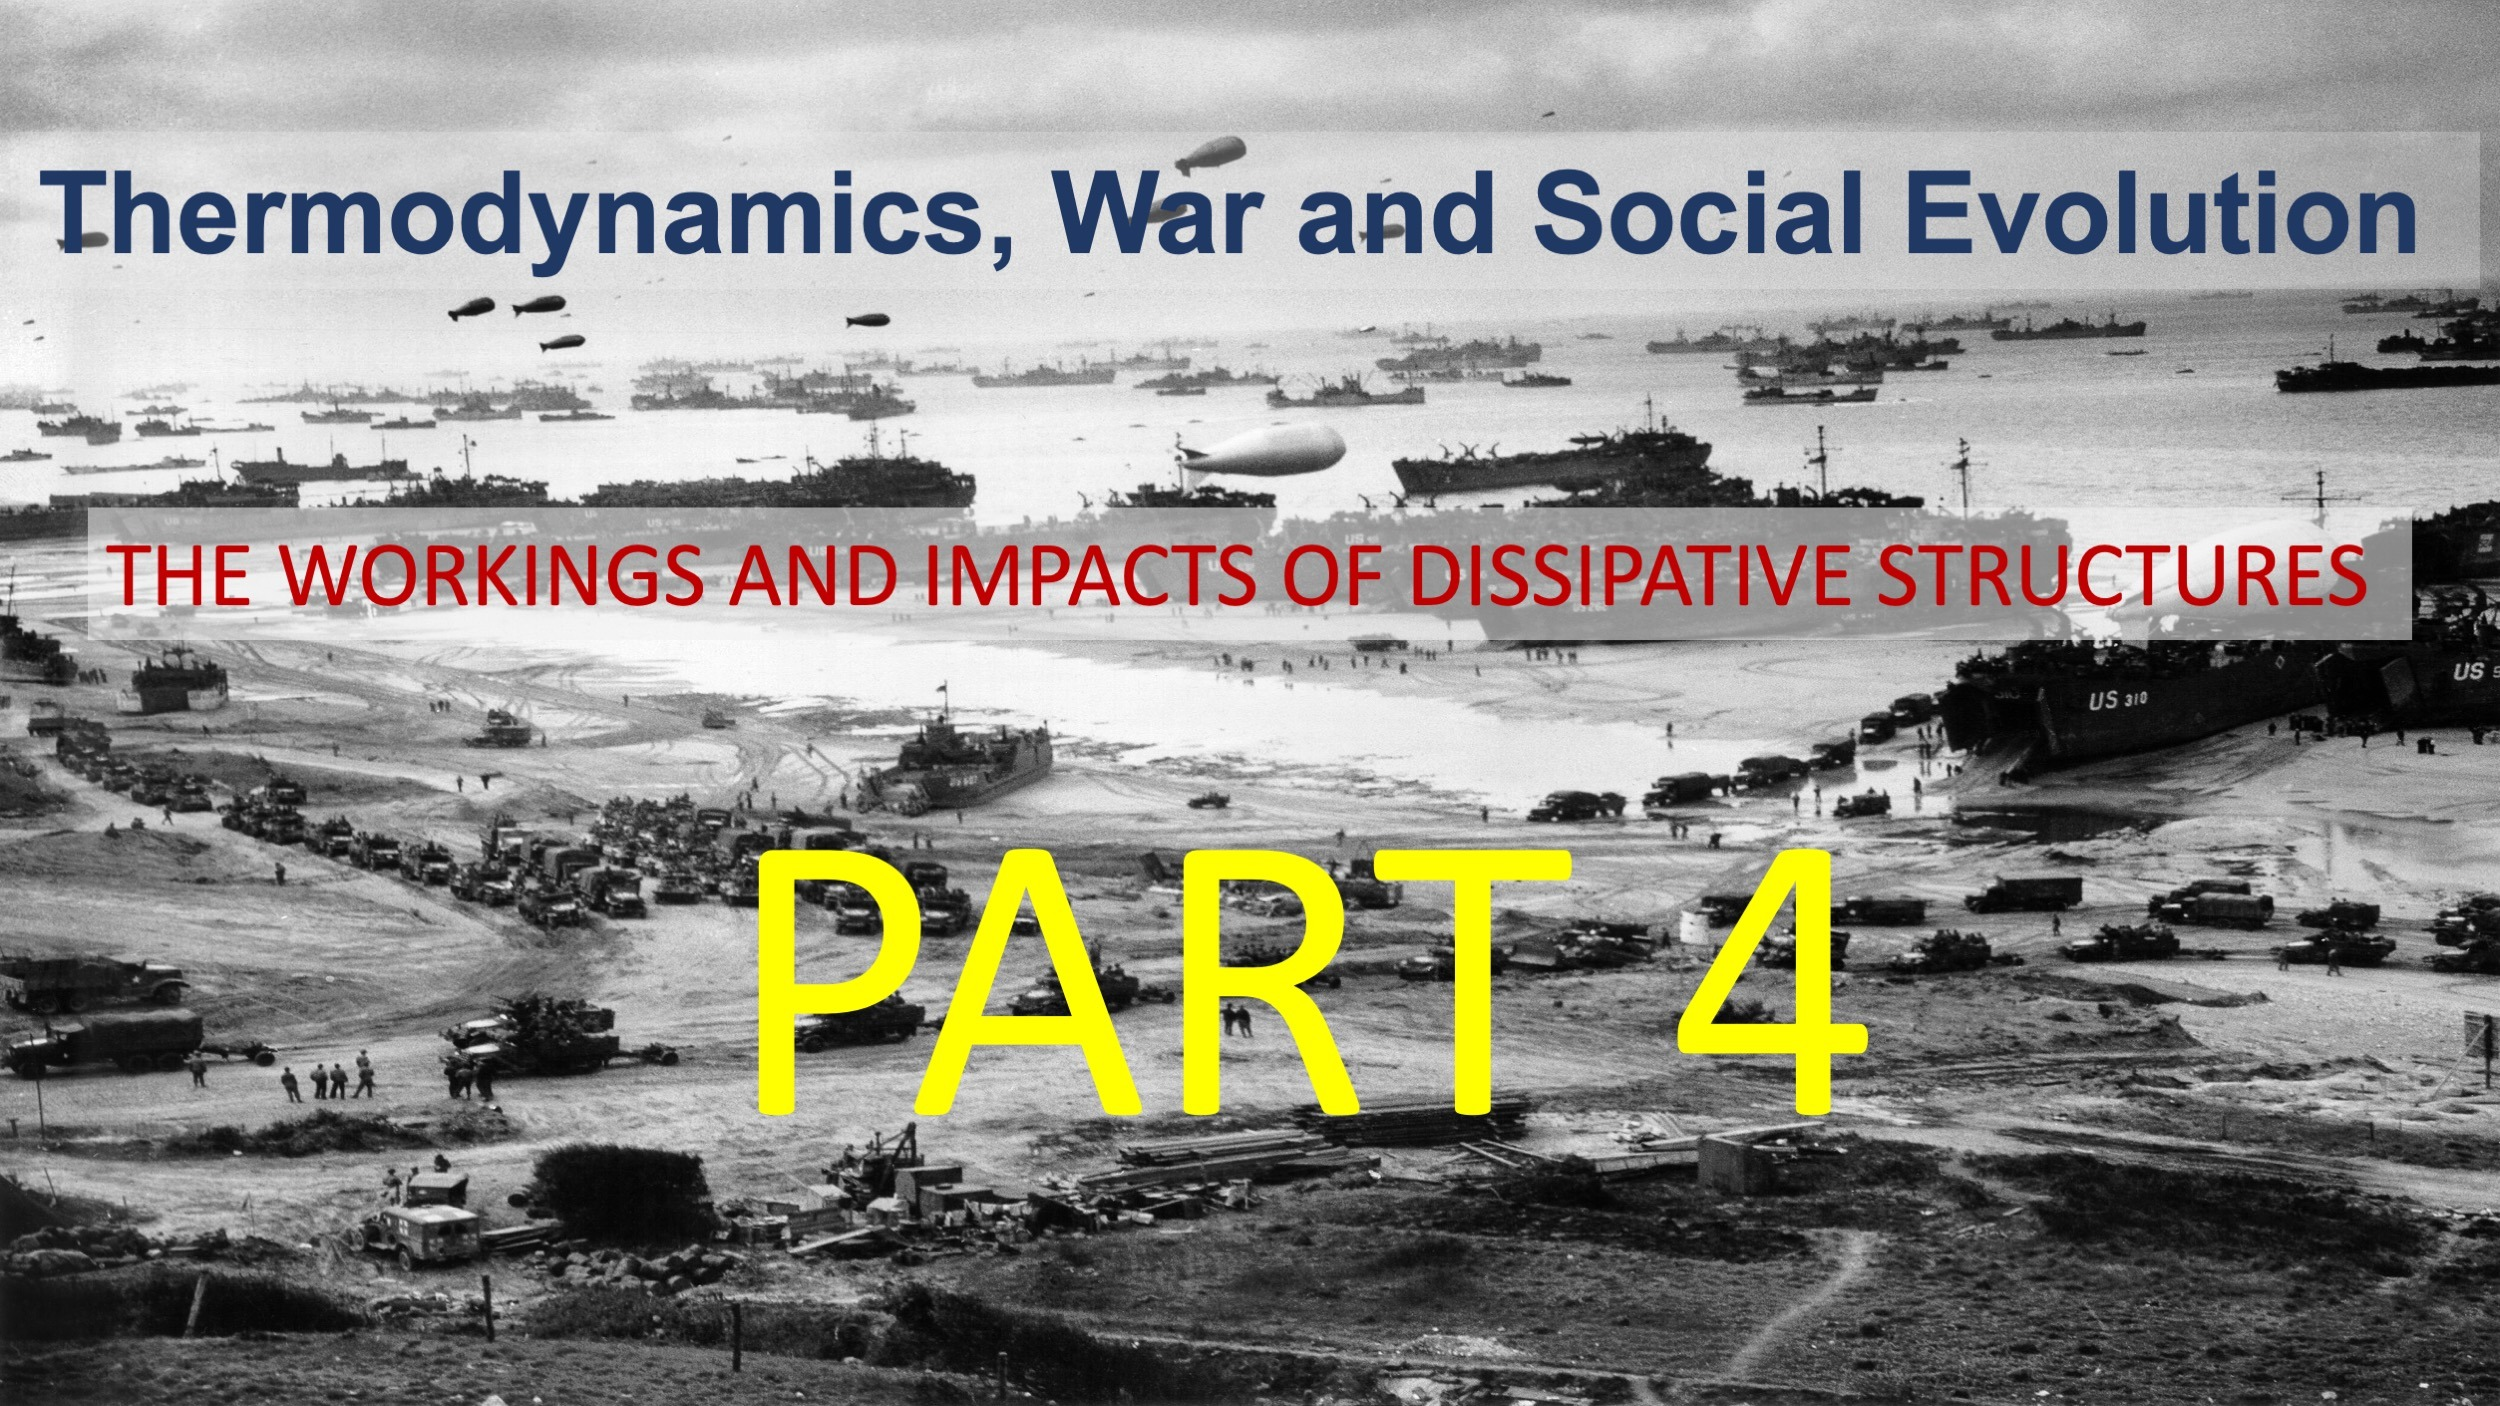 DISSIPATIVE STRUCTURES EXPLAINED: PART 4, PATTERNS IN WAR DYNAMICS EXPLAINED